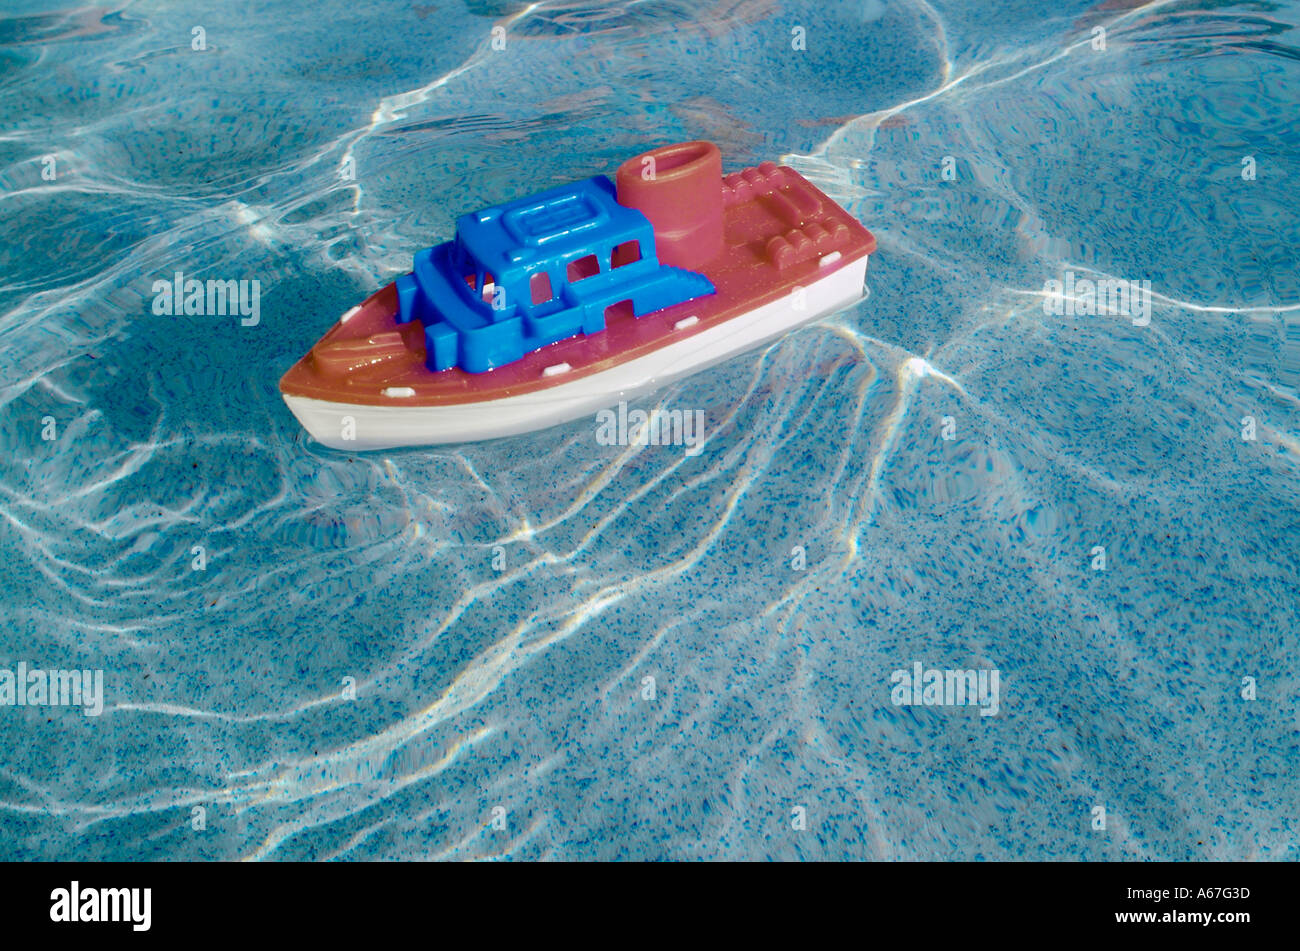 Toy Plastic Boat In Swimming Pool Water Toys Boats Boating Stock Photo Royalty Free Image